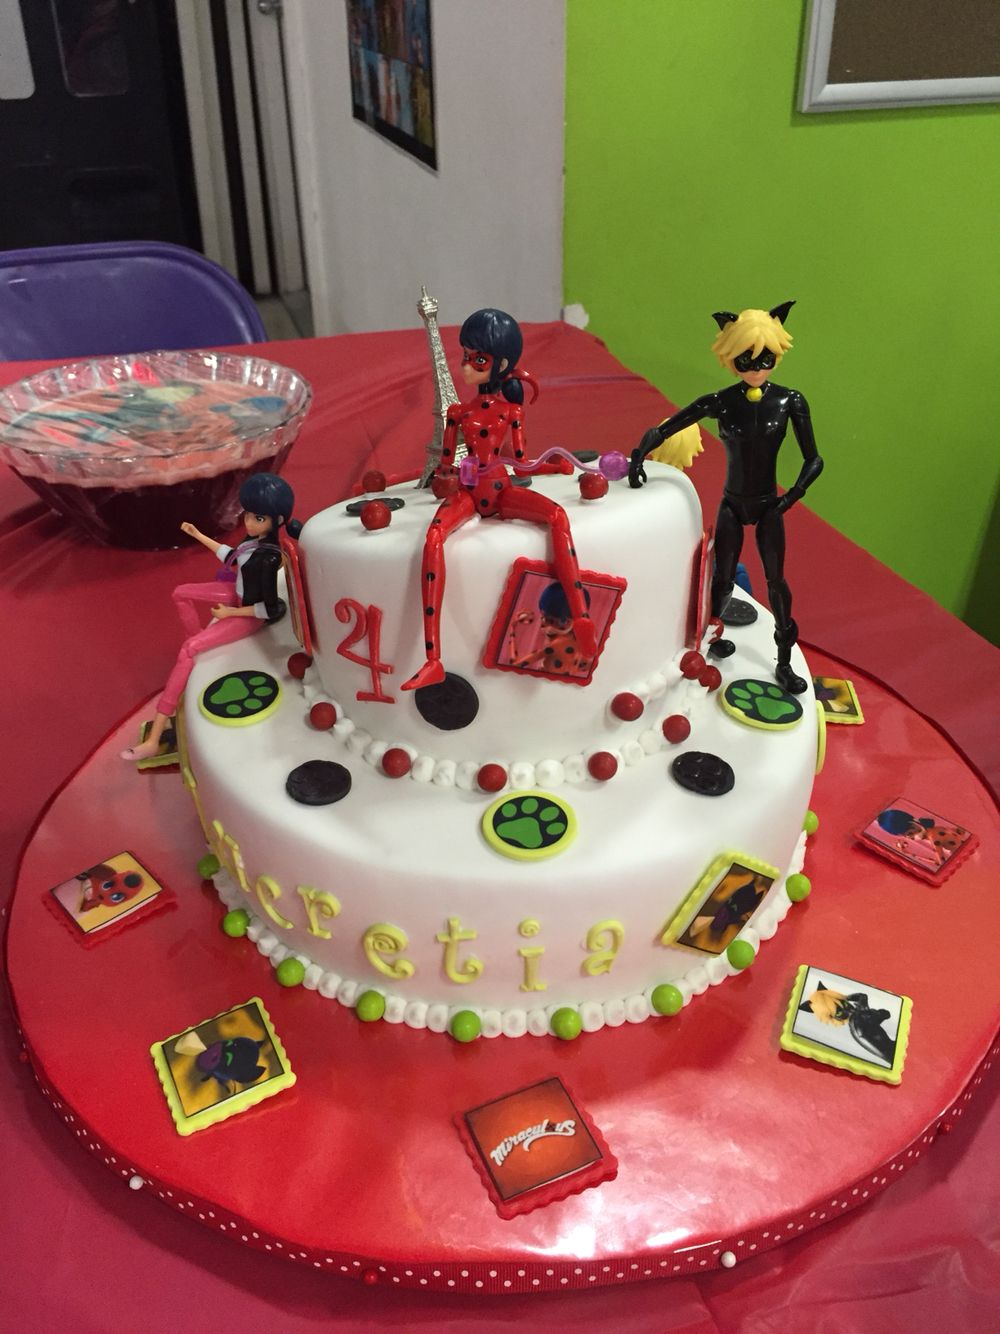 Torten Dekoration Miraculous Ladybug Birthday Cake Torten In 2019